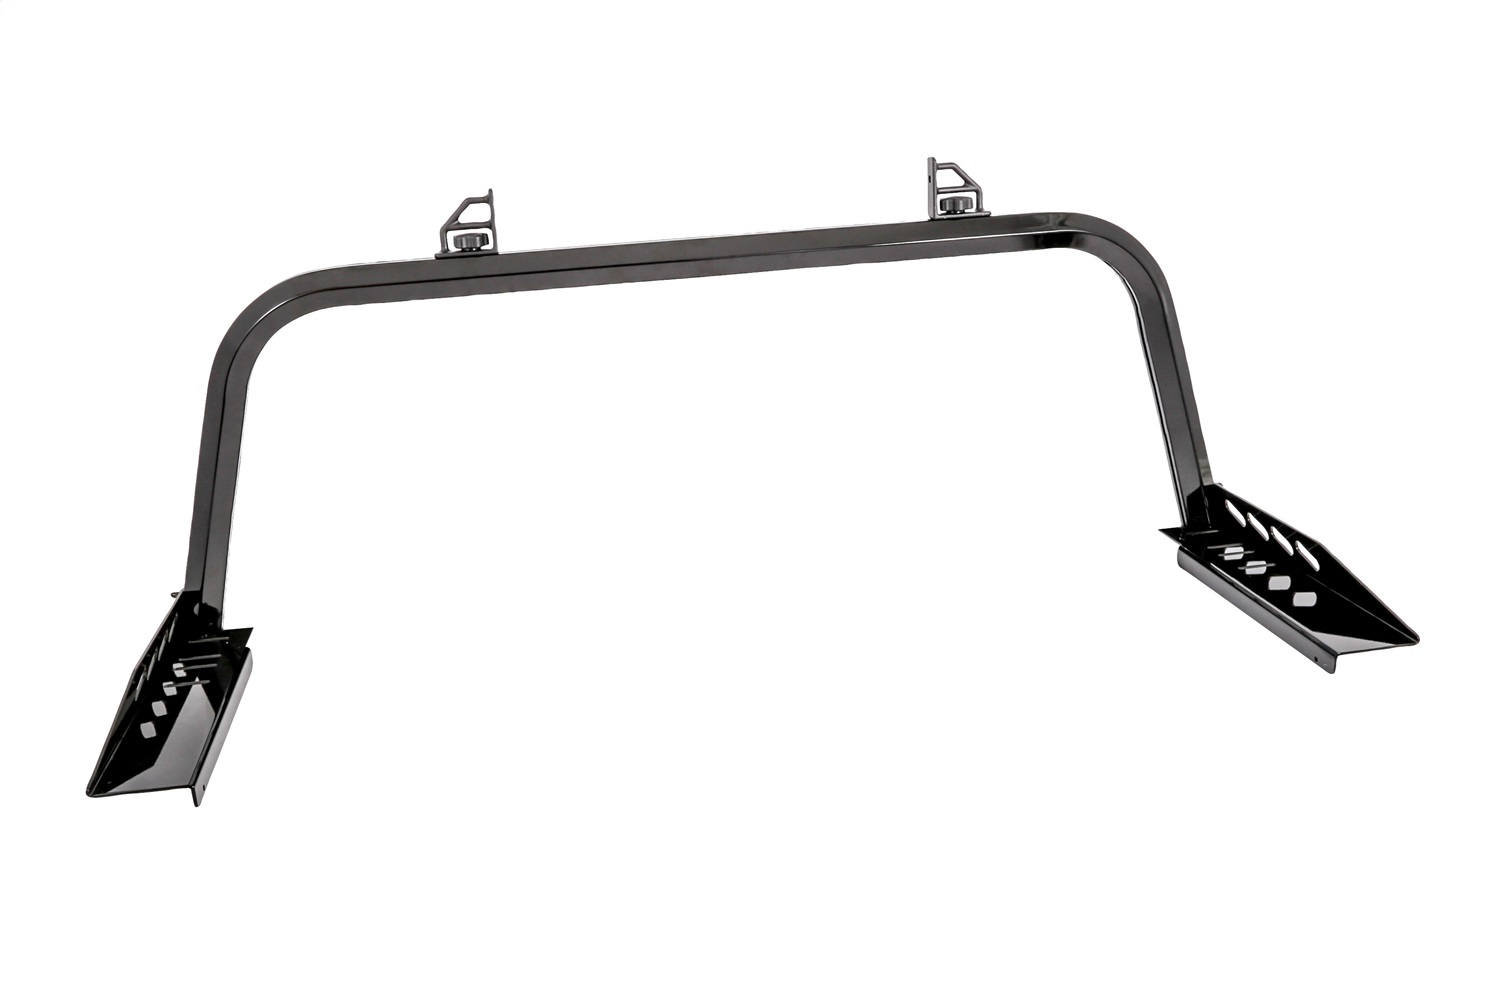 Cab Rack, Gloss Black, Rear Only, Aluminum, Incl. Mounting Brackets